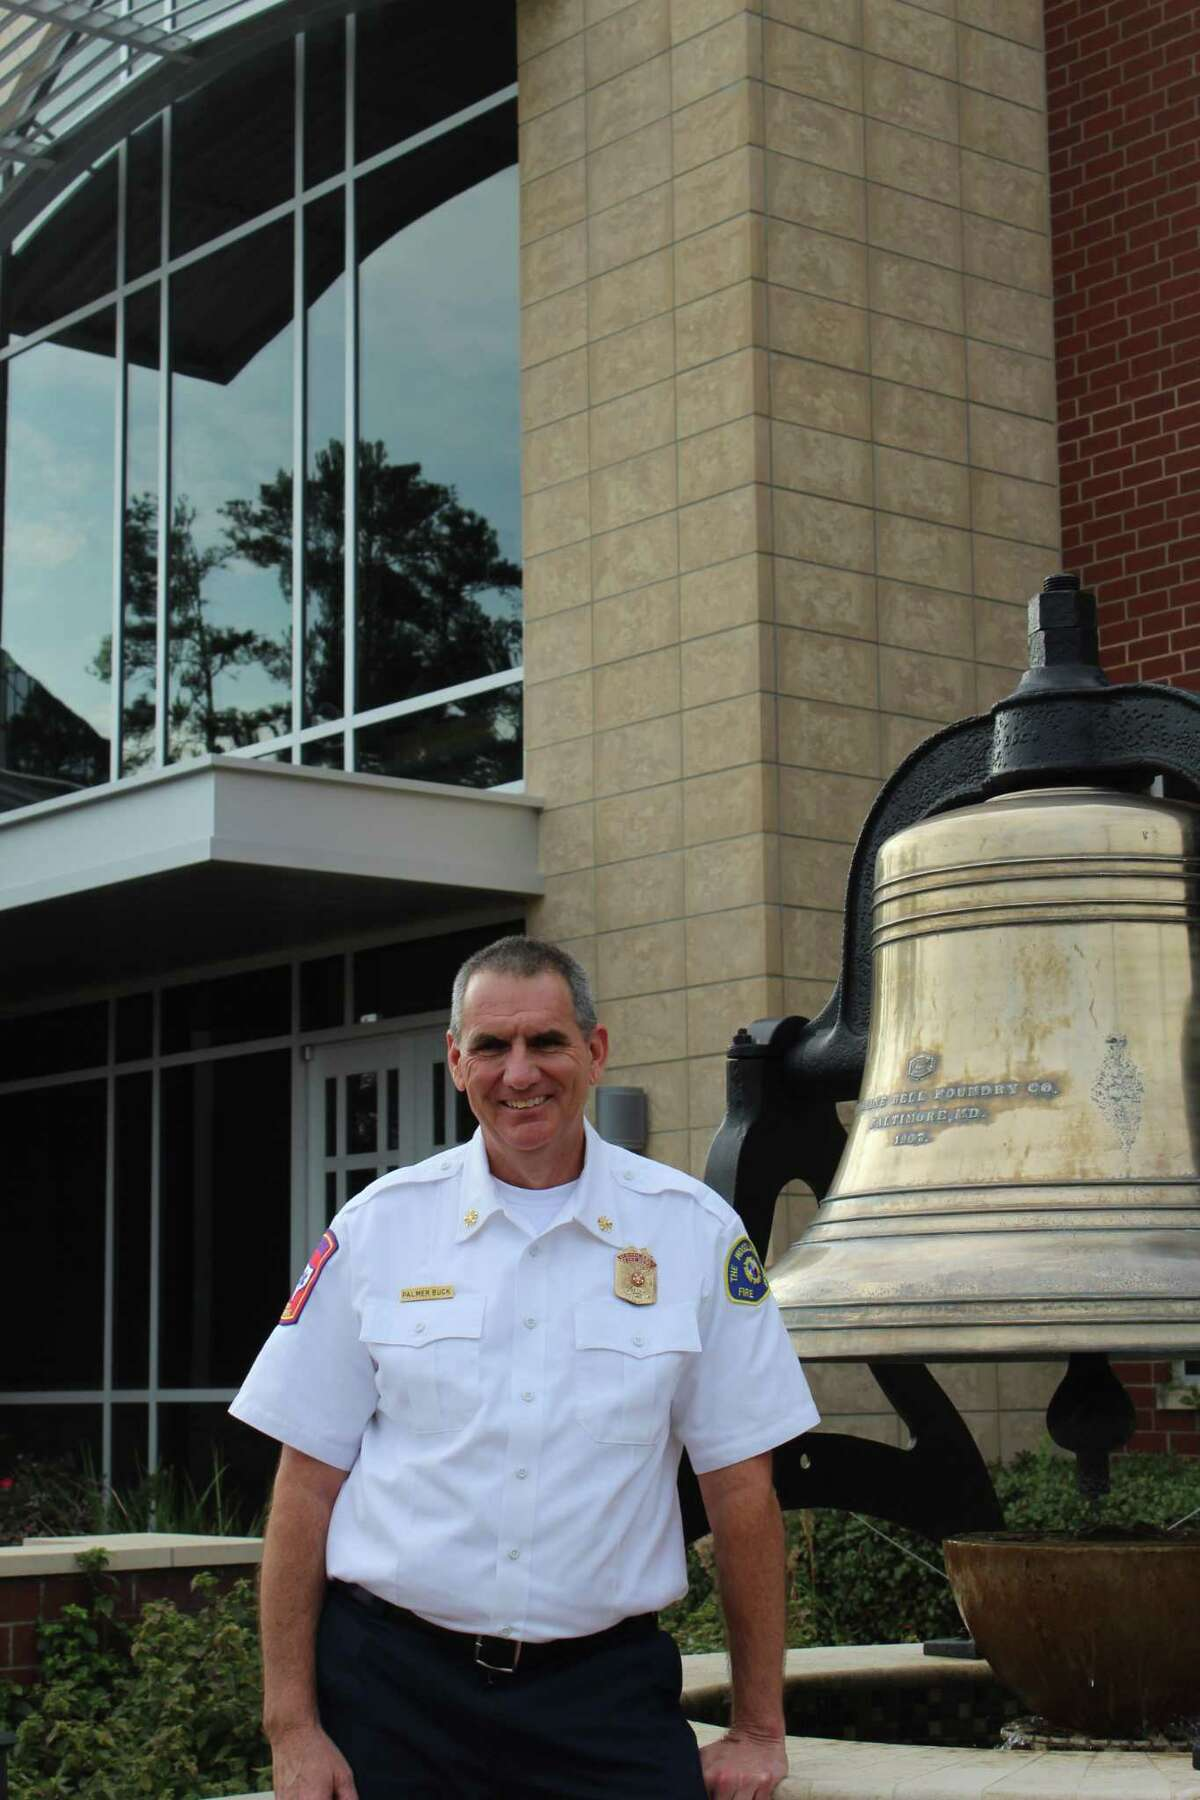 The Woodlands Fire Chief Palmer Buck said the interlocal agreement between The Woodlands and Montgomery County allows up to six off-duty firefighters to help at the vaccination sites run by the county. A second agreement was also approved allowing firefighters to assist at Houston Methodist The Woodlands Hospital if needed.